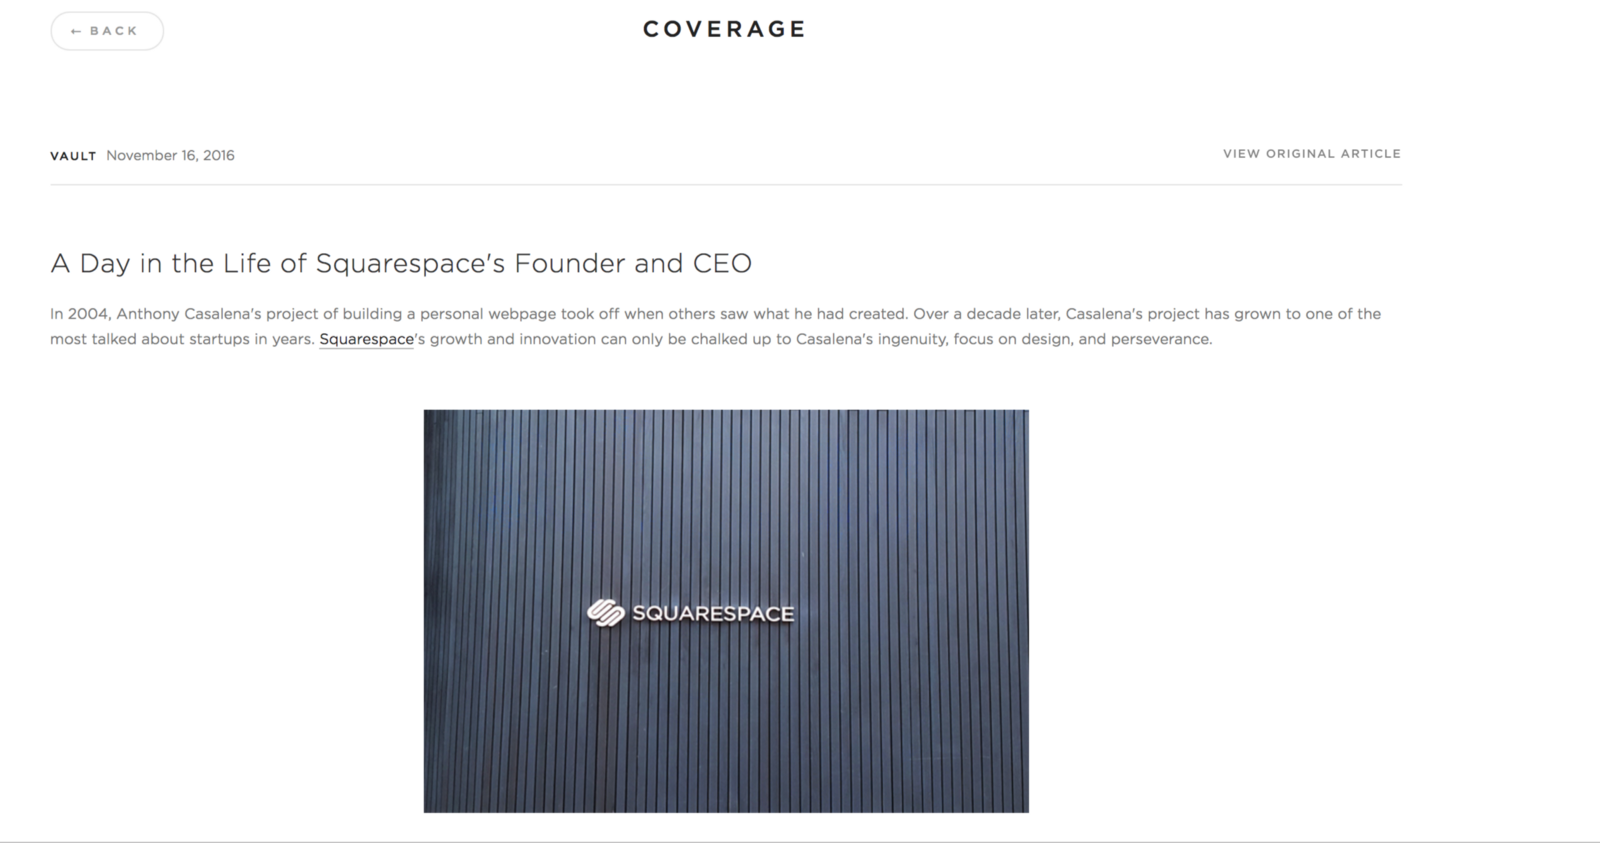 Squarespace Have A Blog About The Founder Look At How They Answer Questions Future Of Company And Problem Theyre Solving